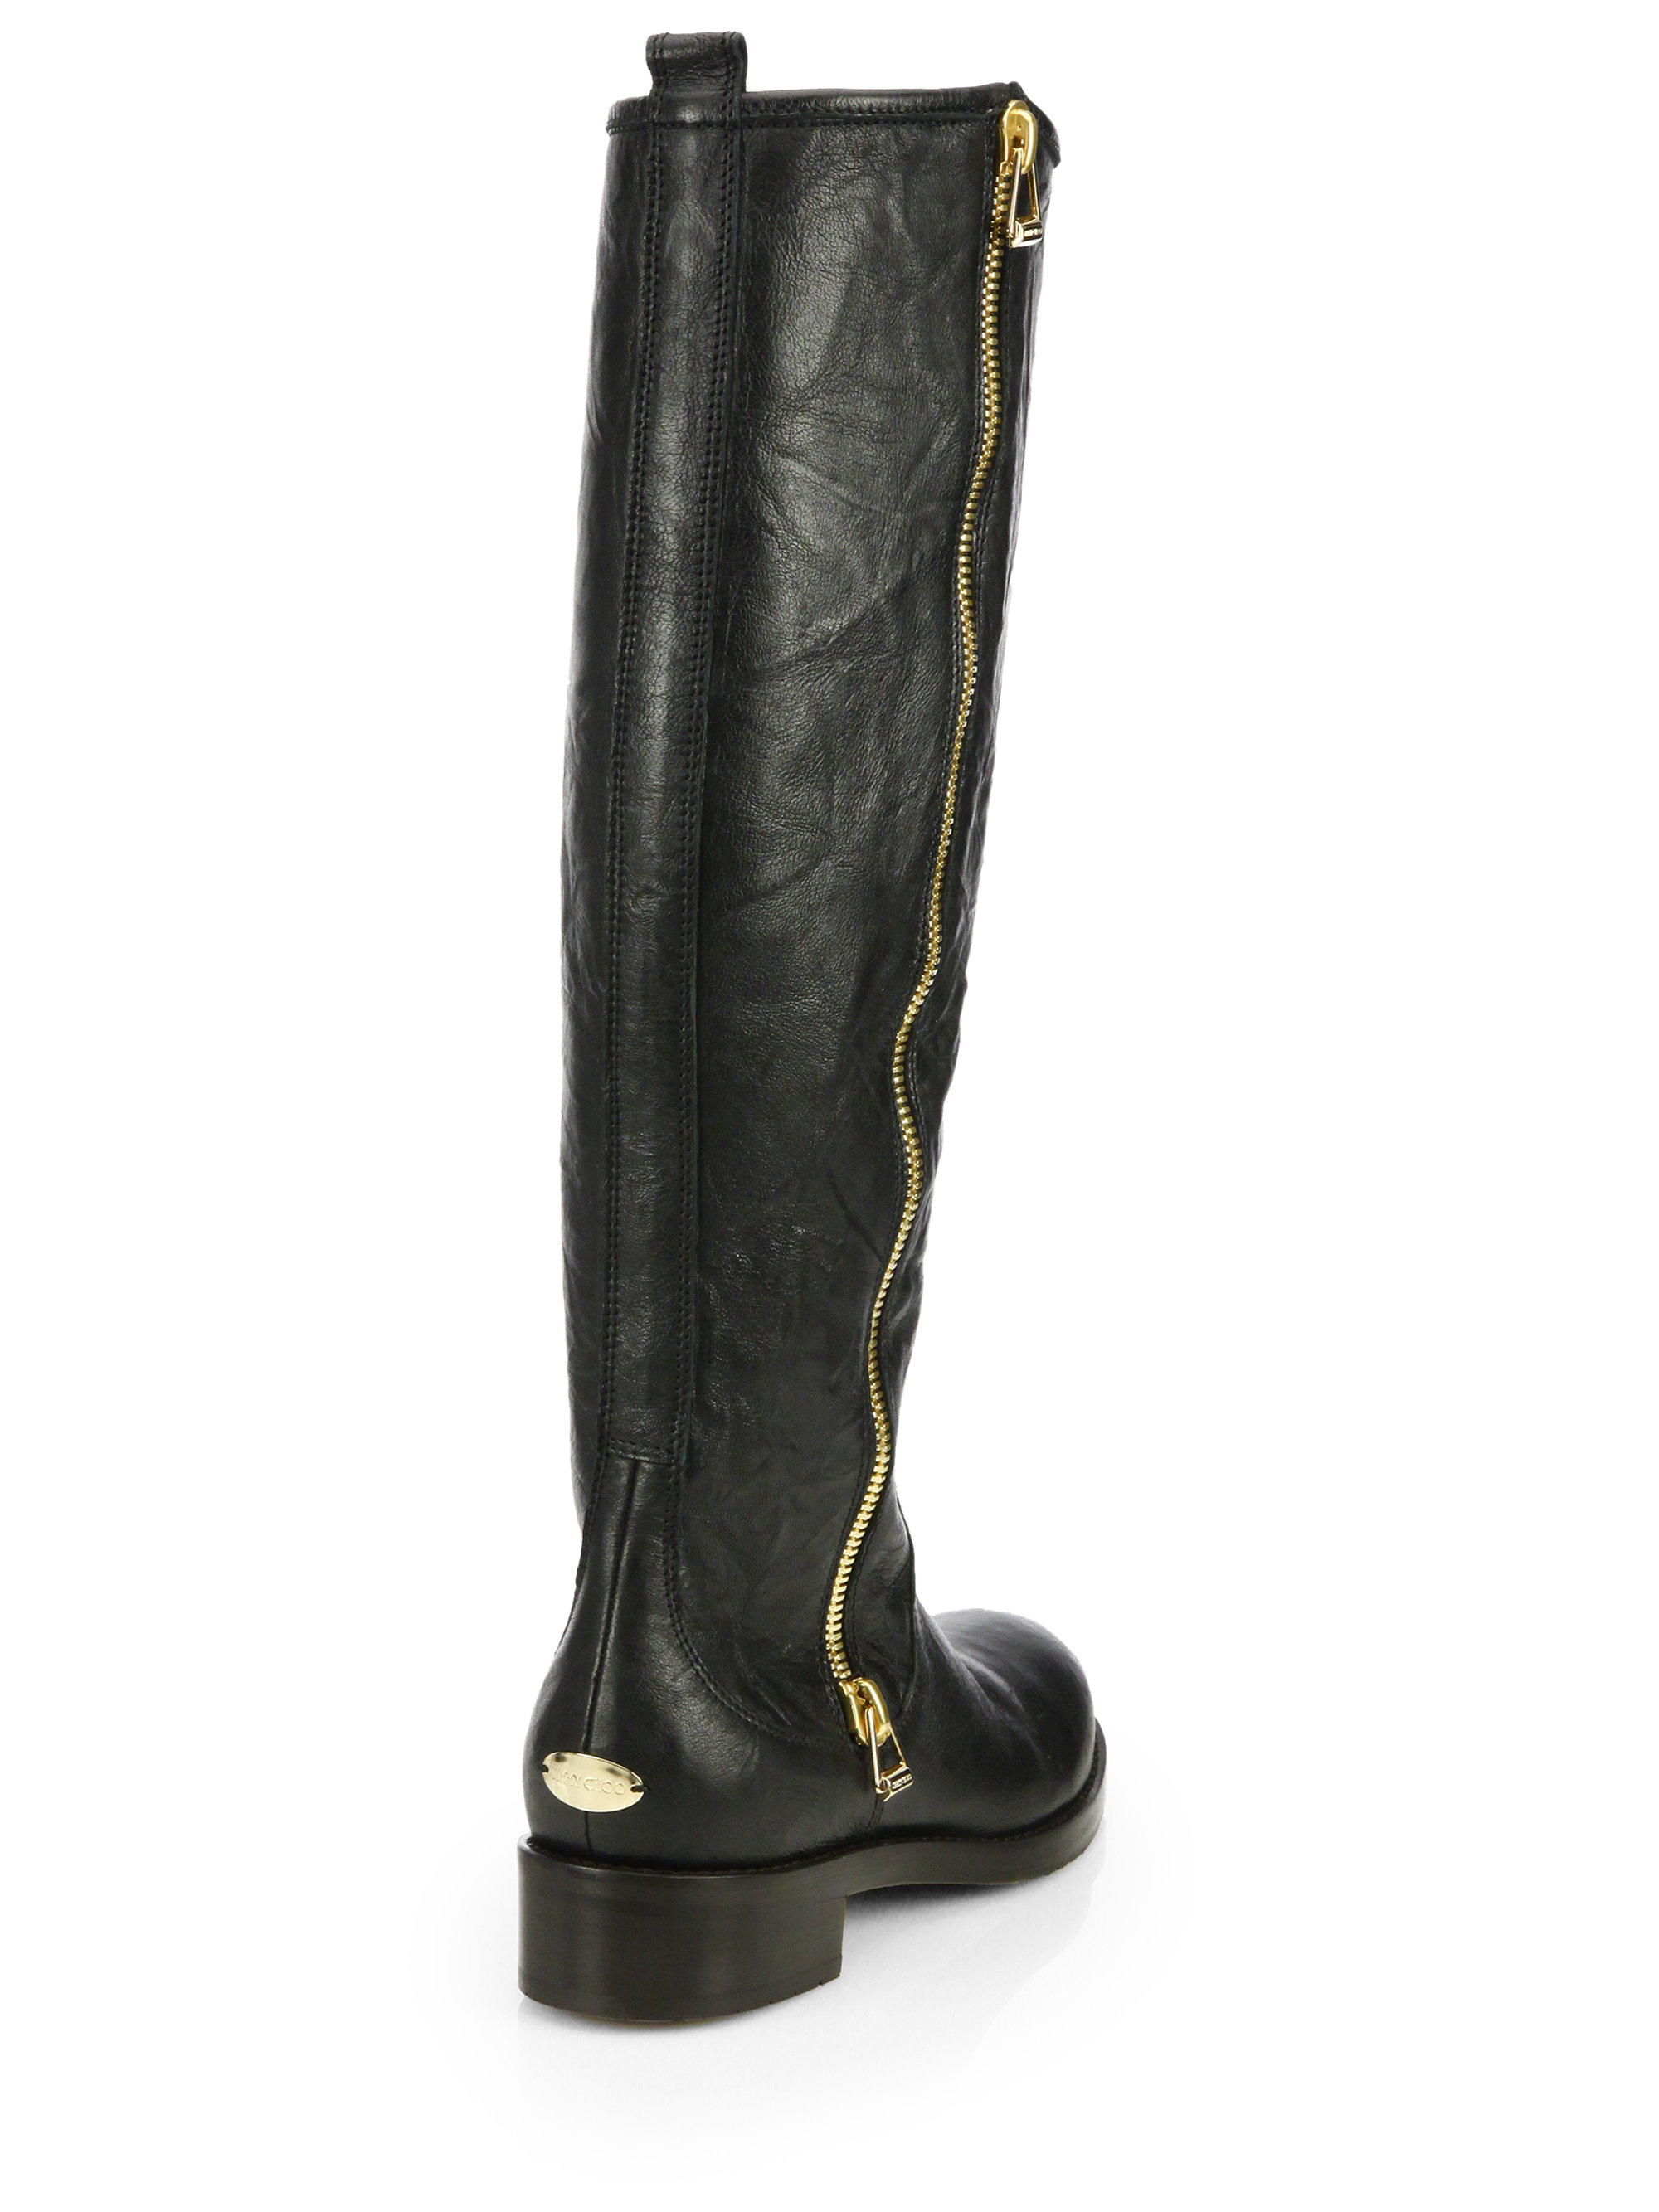 Jimmy Choo Leather Knee-High Boots pre order cheap online buy cheap 2014 VPY3WM